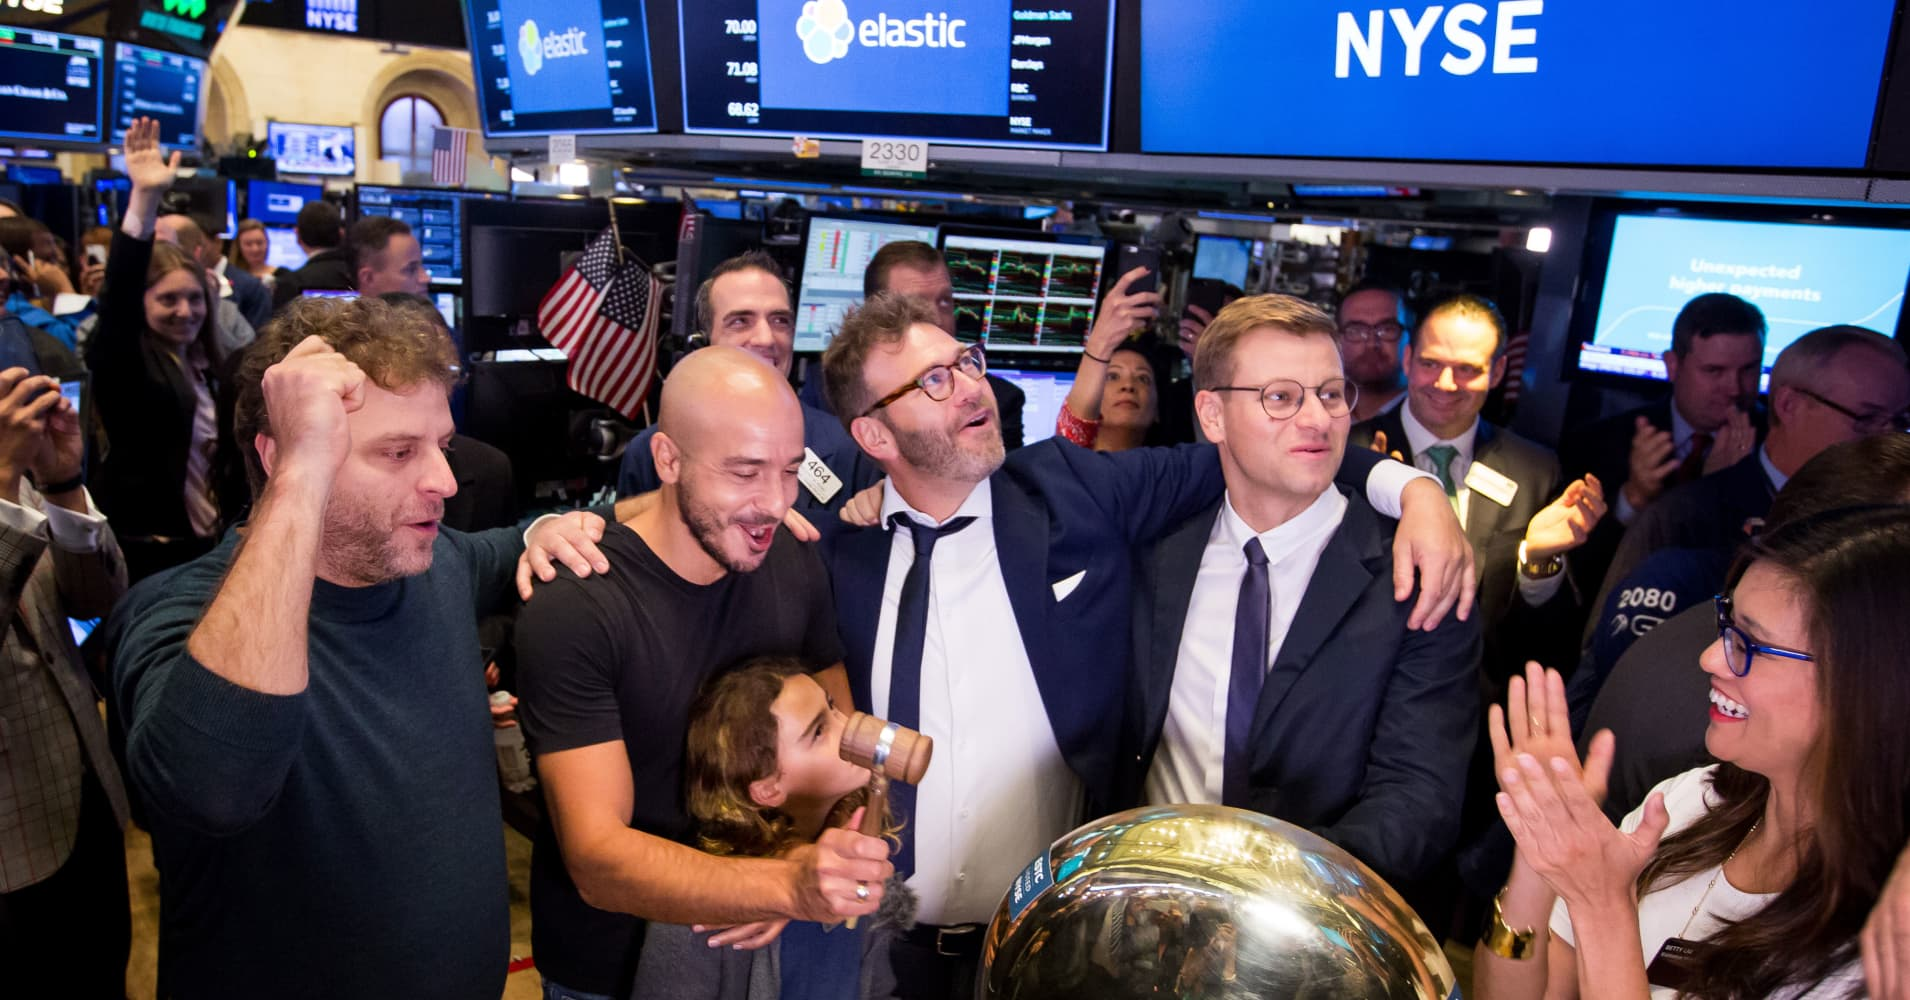 Search company Elastic nearly doubles on first trading day